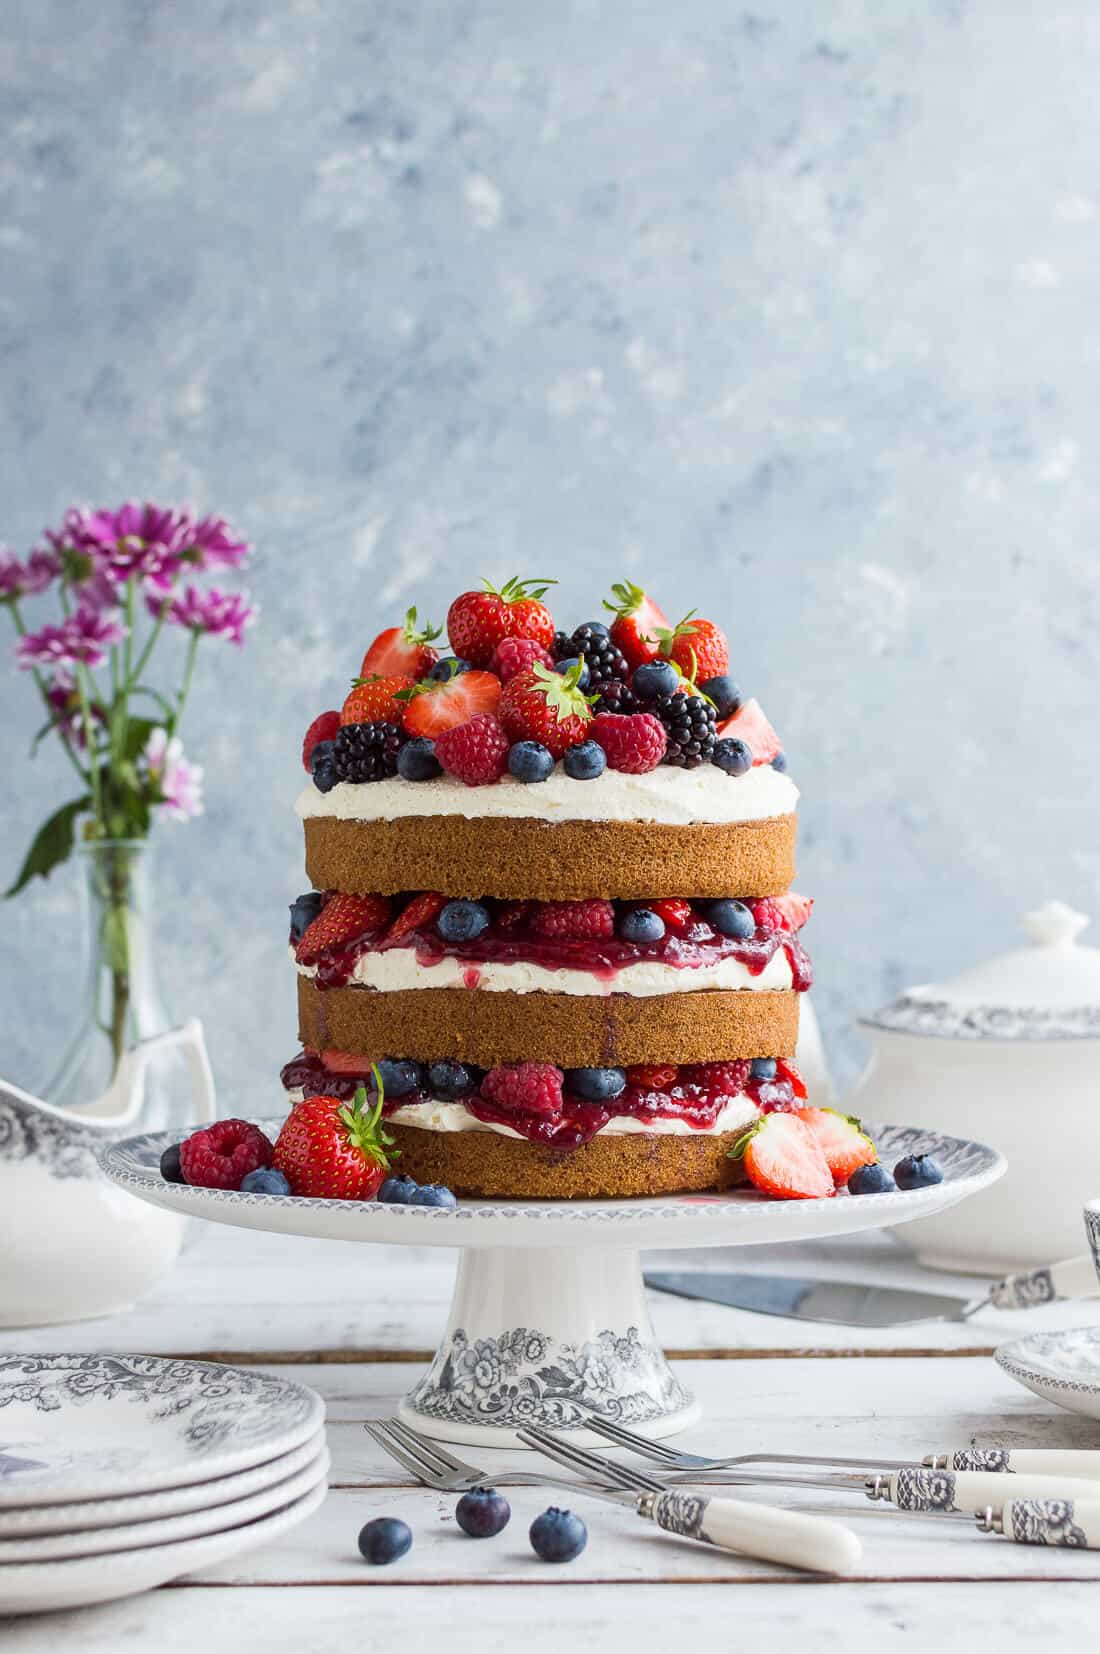 Vegan vanilla cake with berries and jam - a light, fluffy, easy vegan vanilla cake filled with vanilla buttercream, raspberry jam and summer berries. The perfect cake for afternoon tea! #vegan #veganbaking #layercake #vanilla